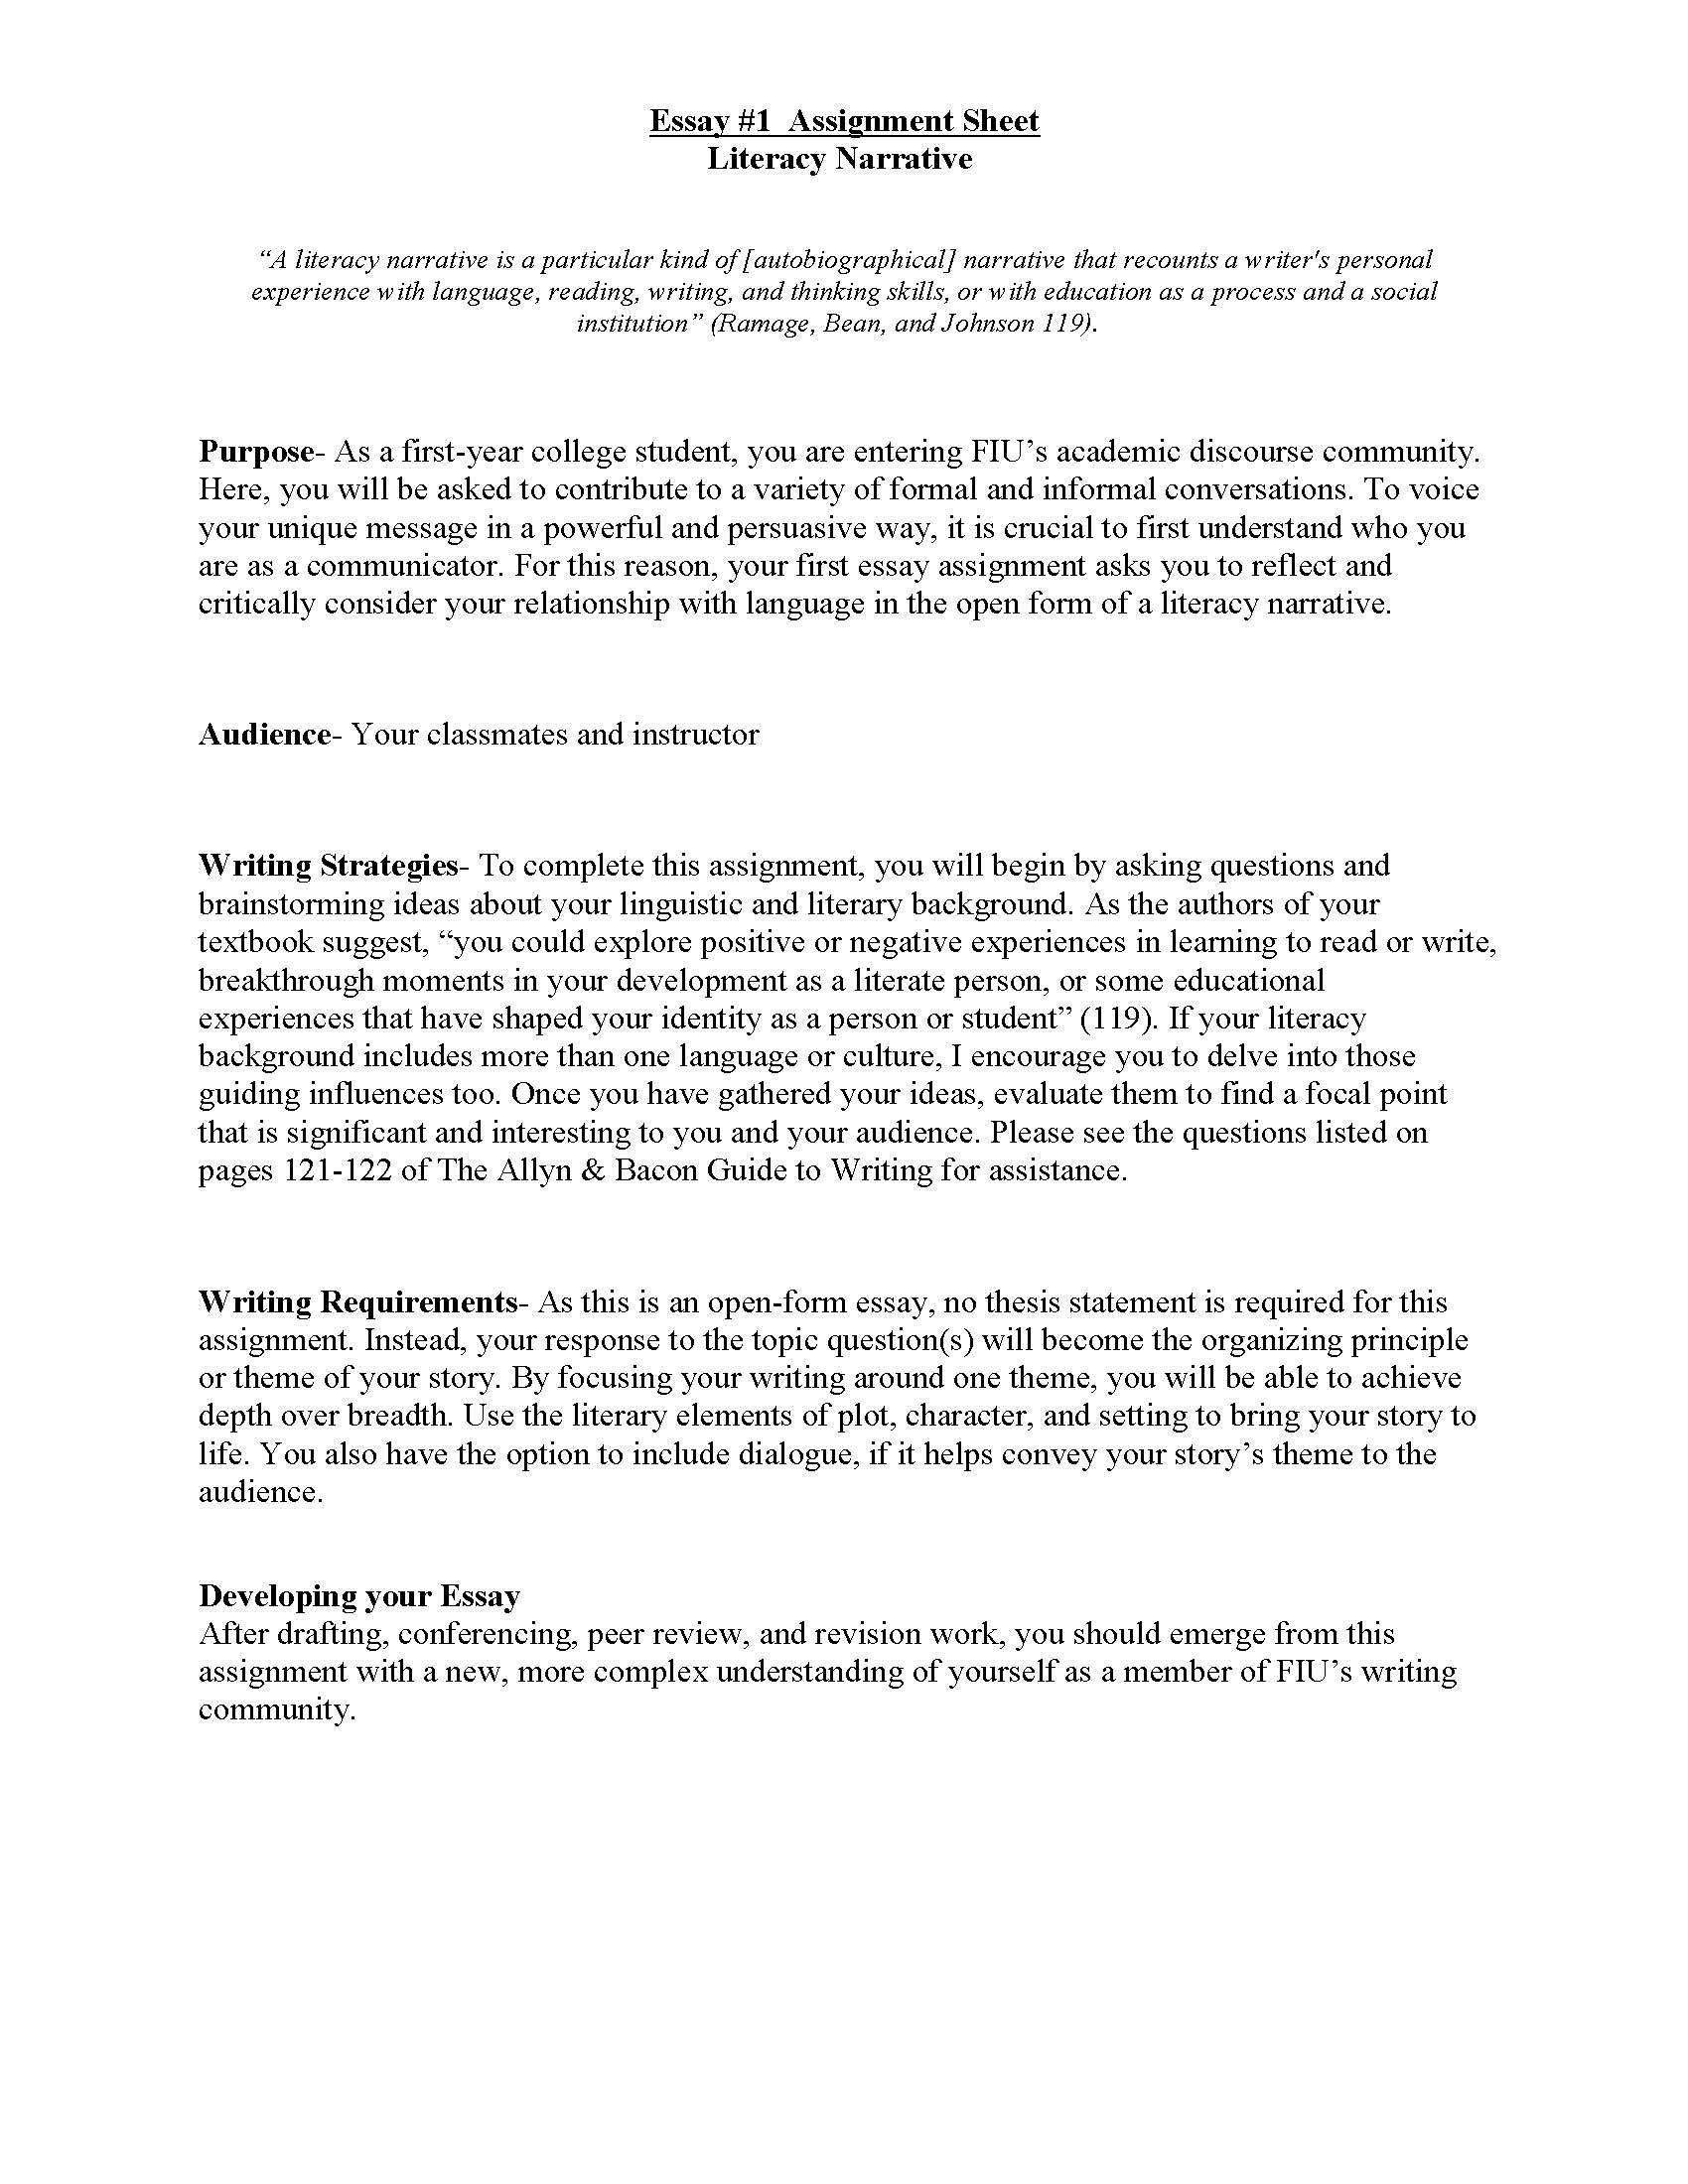 Essay Literacy What Is Literacy Essay Literacy Essay Ideas Essay